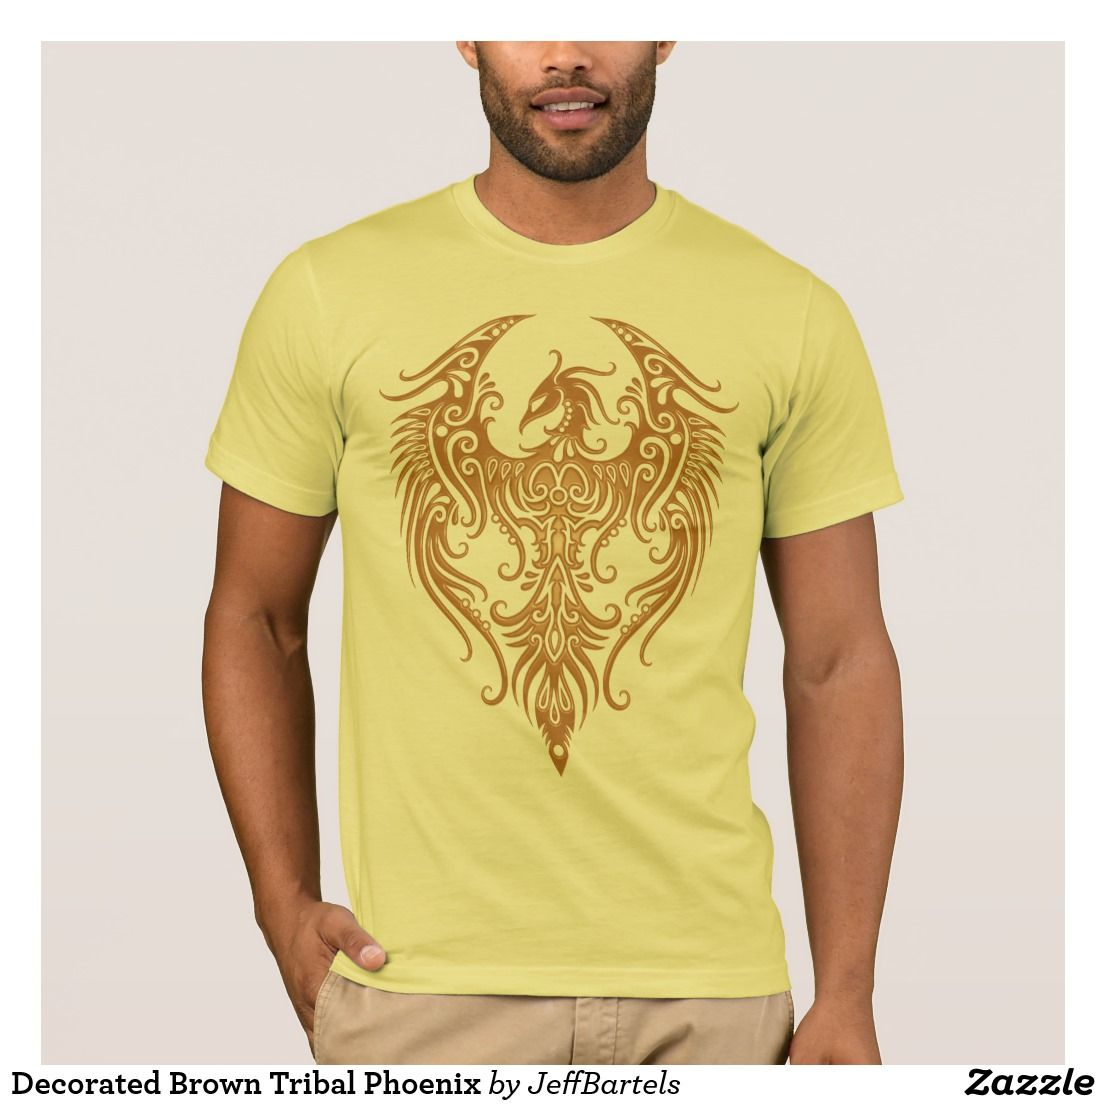 Create your own designs amp sell your design online shirts zazzle - Decorated Brown Tribal Phoenix T Shirt